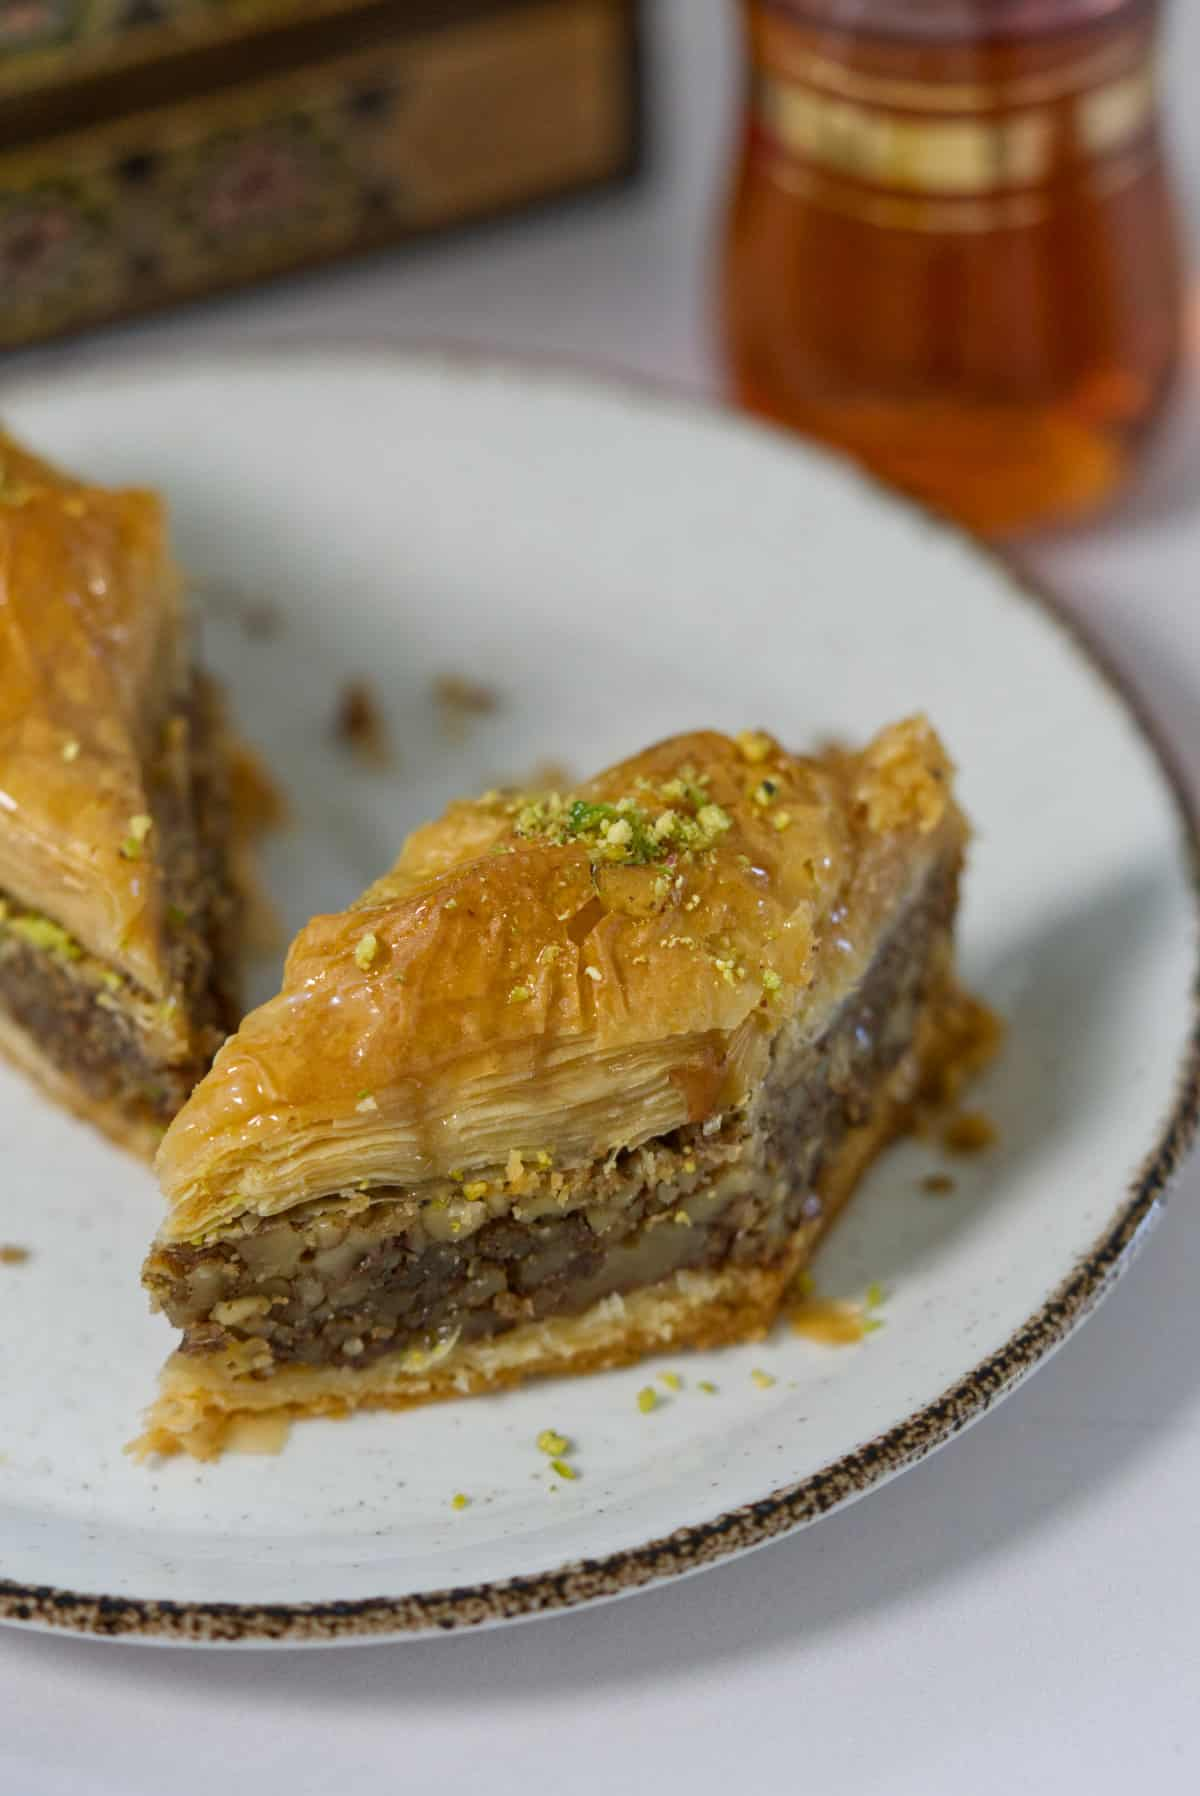 A couple of pieces of baklawa on a plate